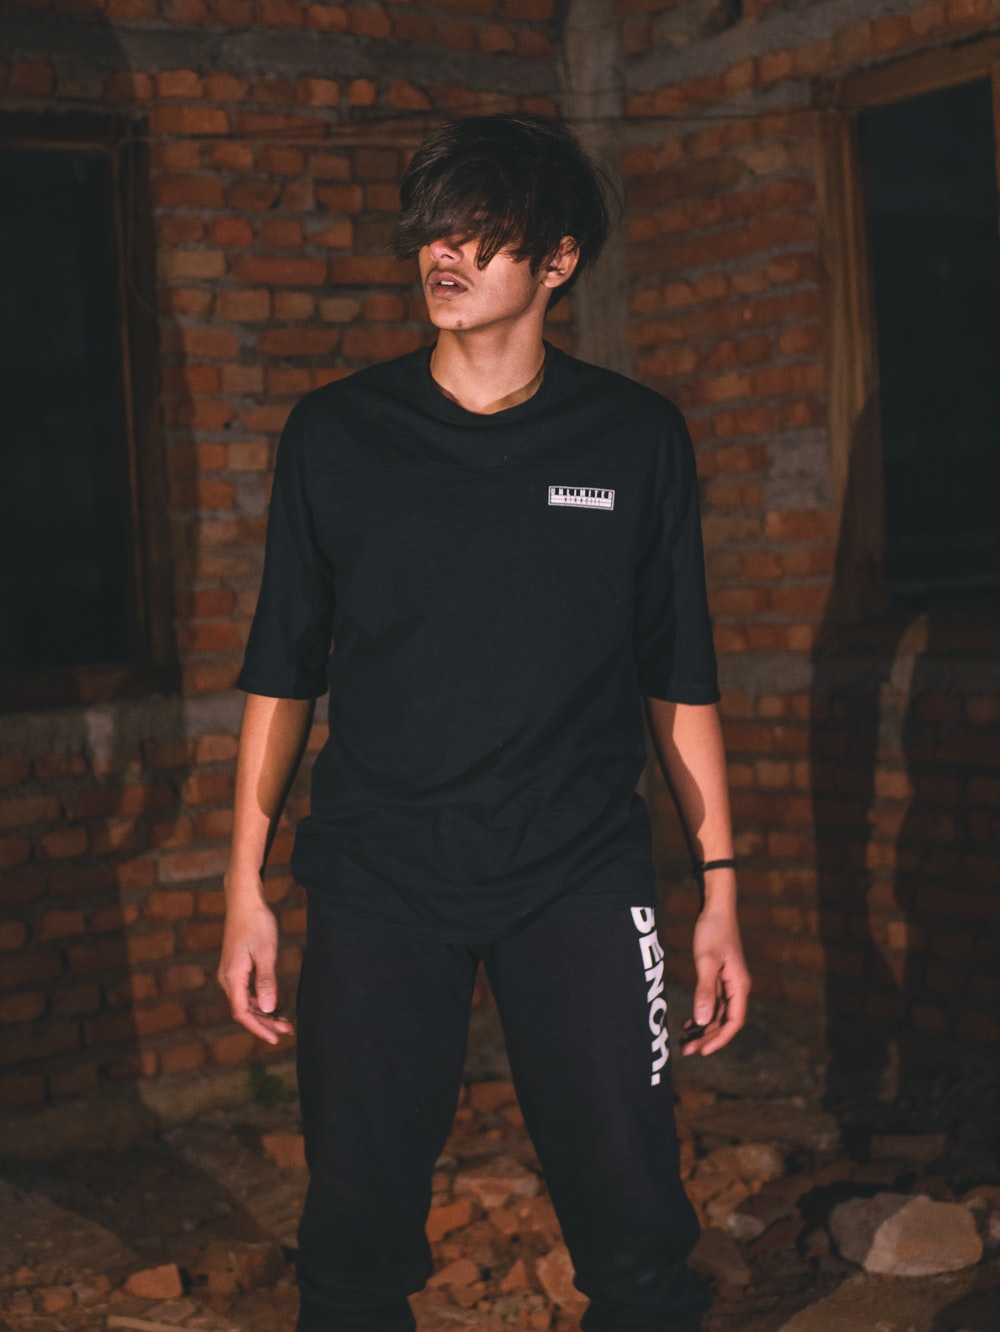 man in black crew neck t-shirt and black pants standing near brown brick wall